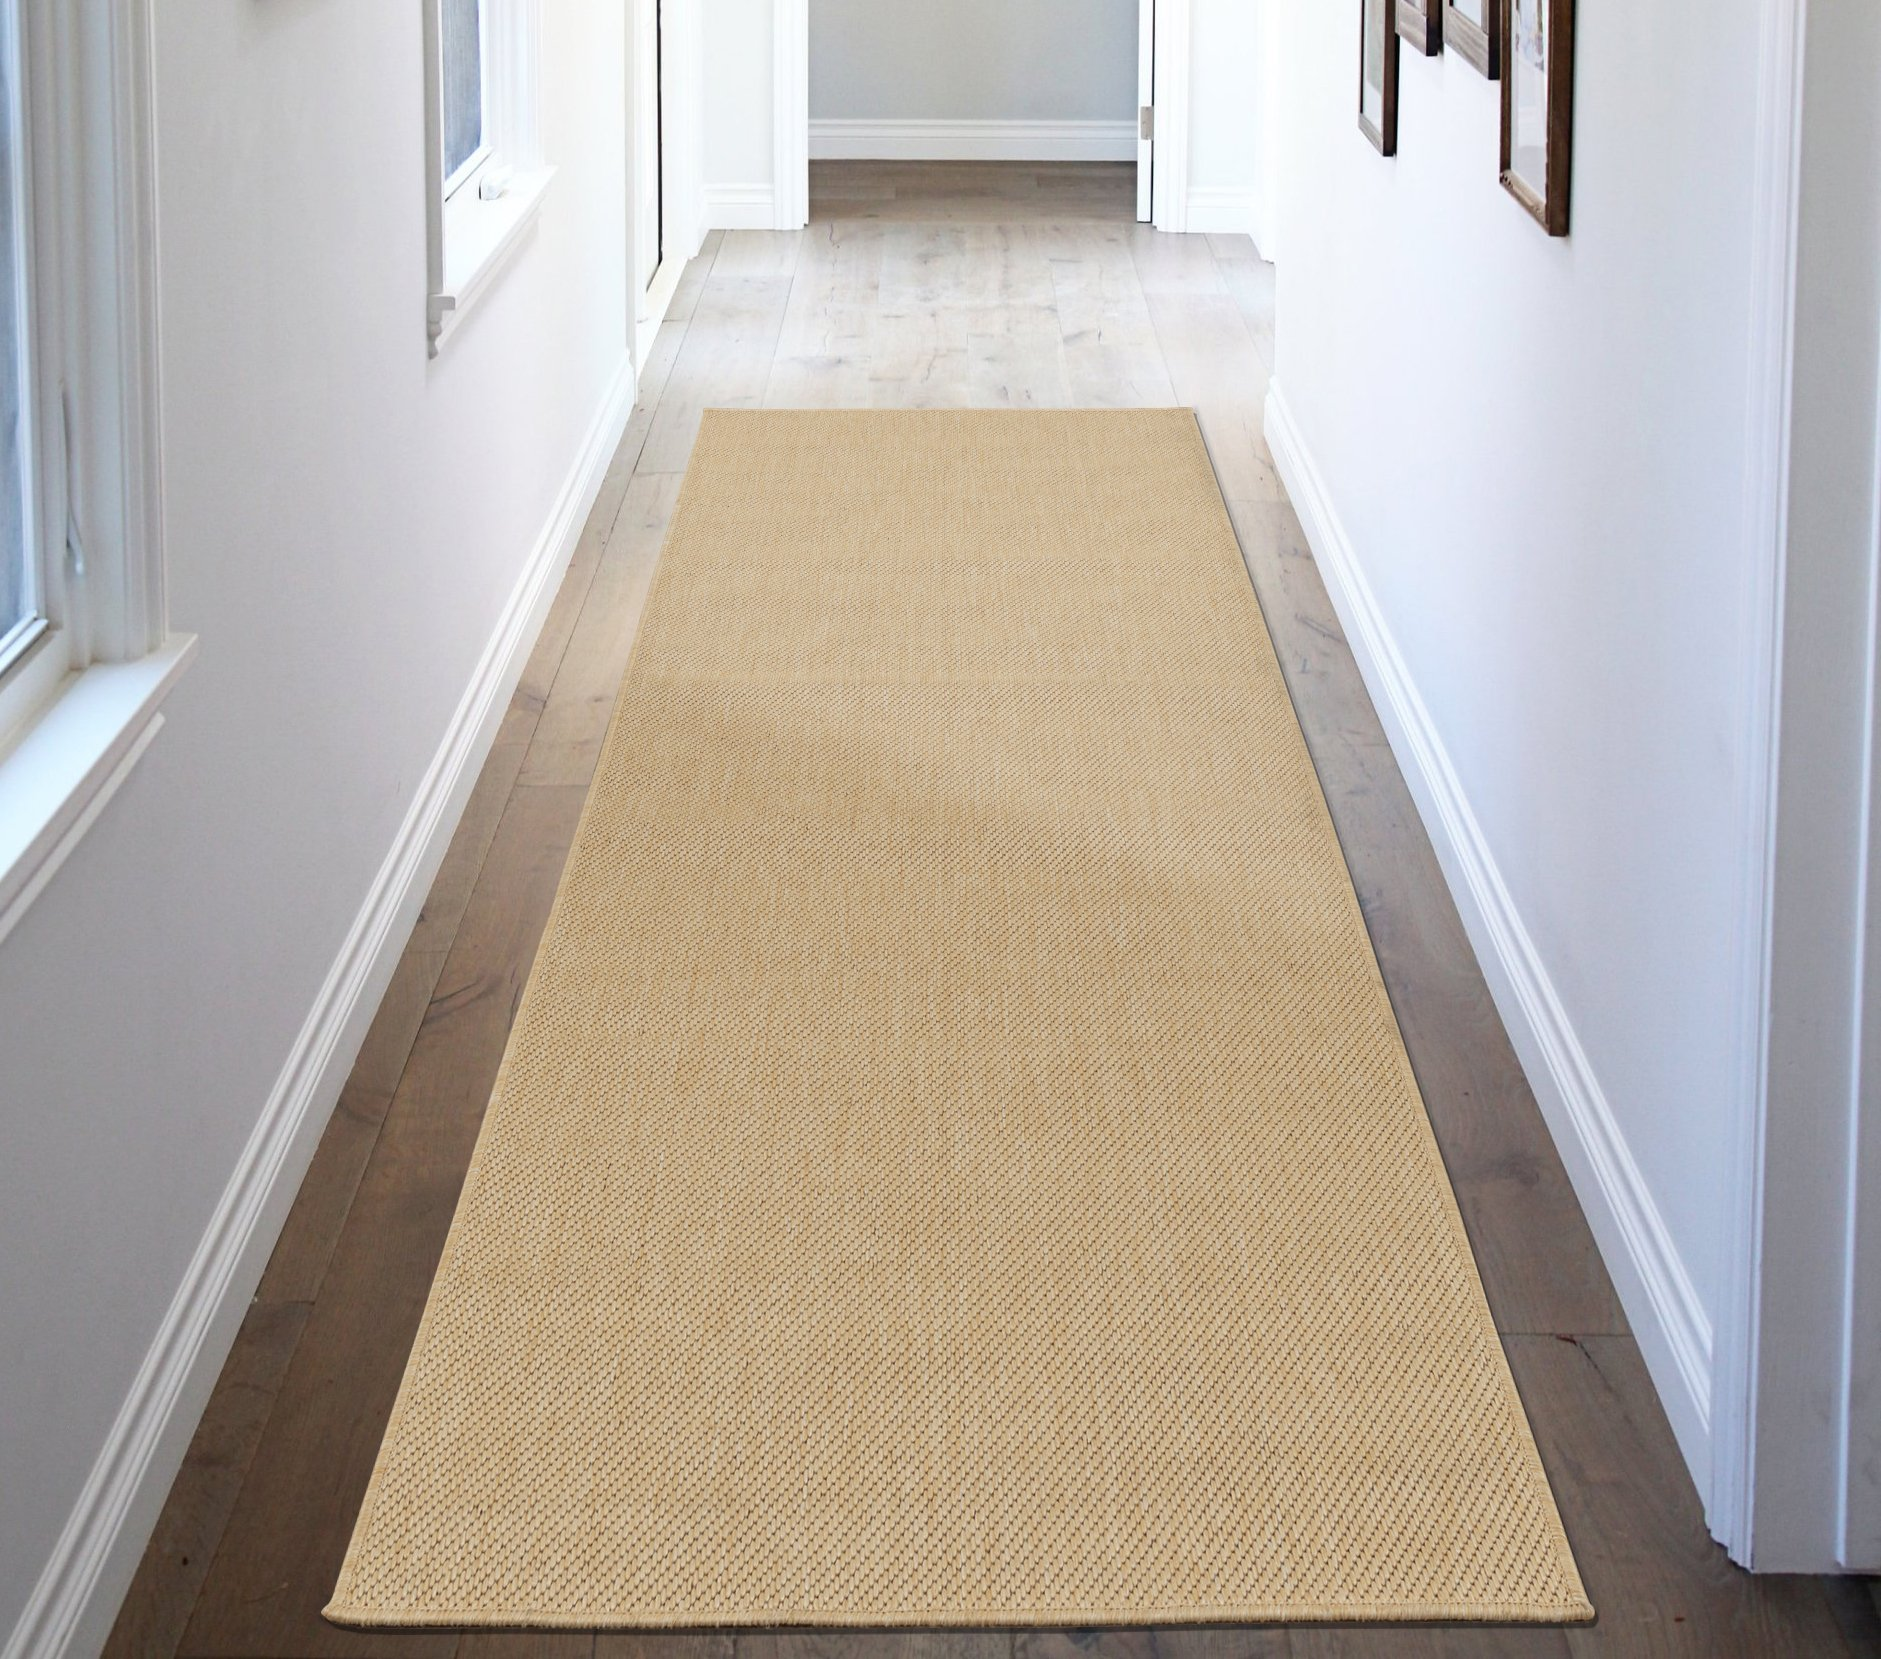 Ottomanson Jardin Collection Natural Solid Design Indoor/Outdoor Jute Backing Synthetic Sisal Runner Rug, Cream, 2'7'' x 7'0''